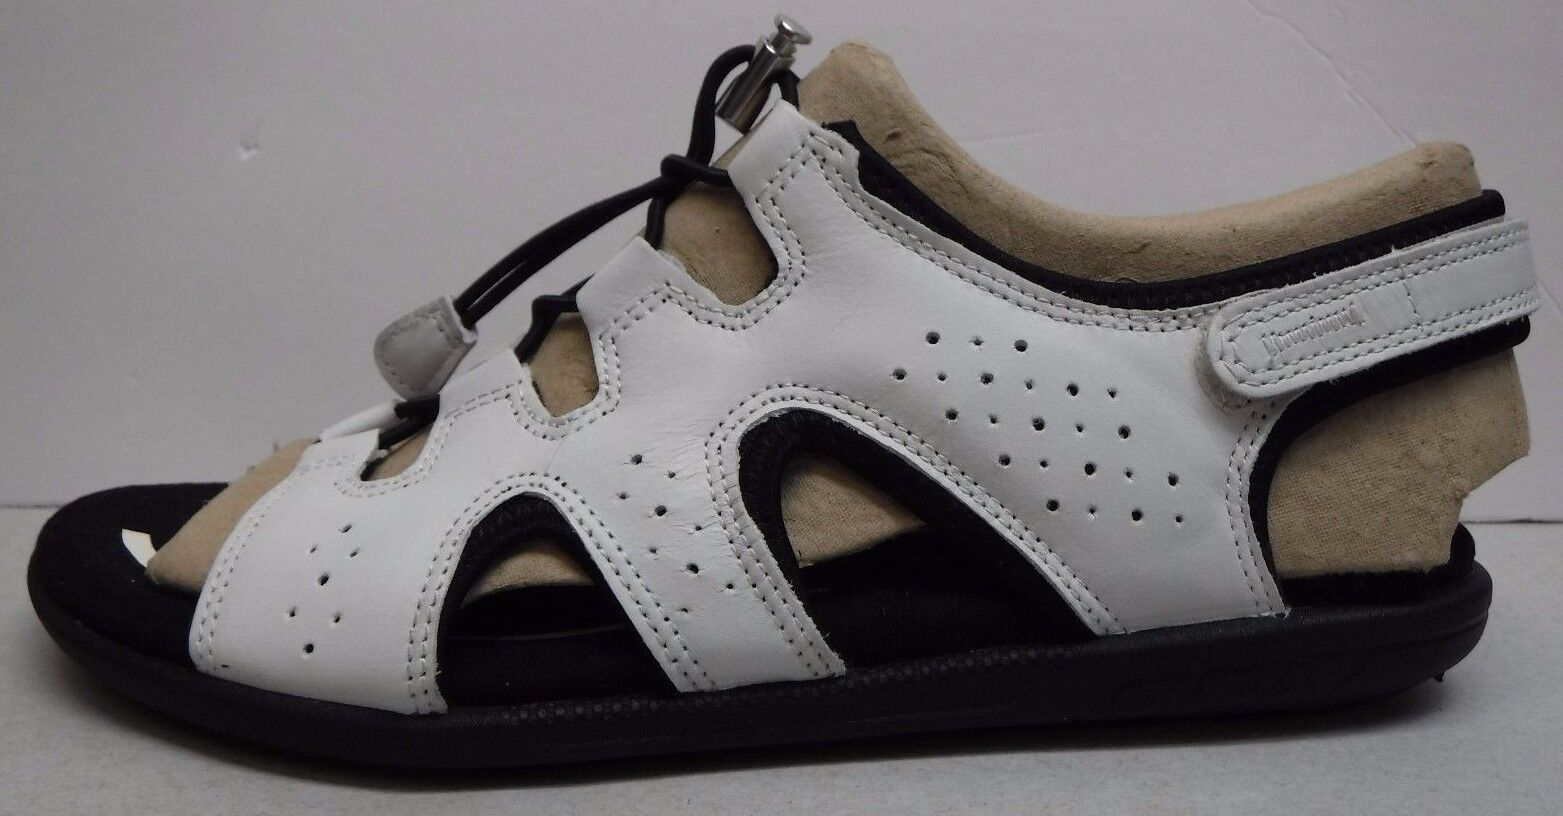 Ecco 10 Size EUR 41 US 10 Ecco 10.5 White  Leather Sandals New Womens Shoes a6bf50